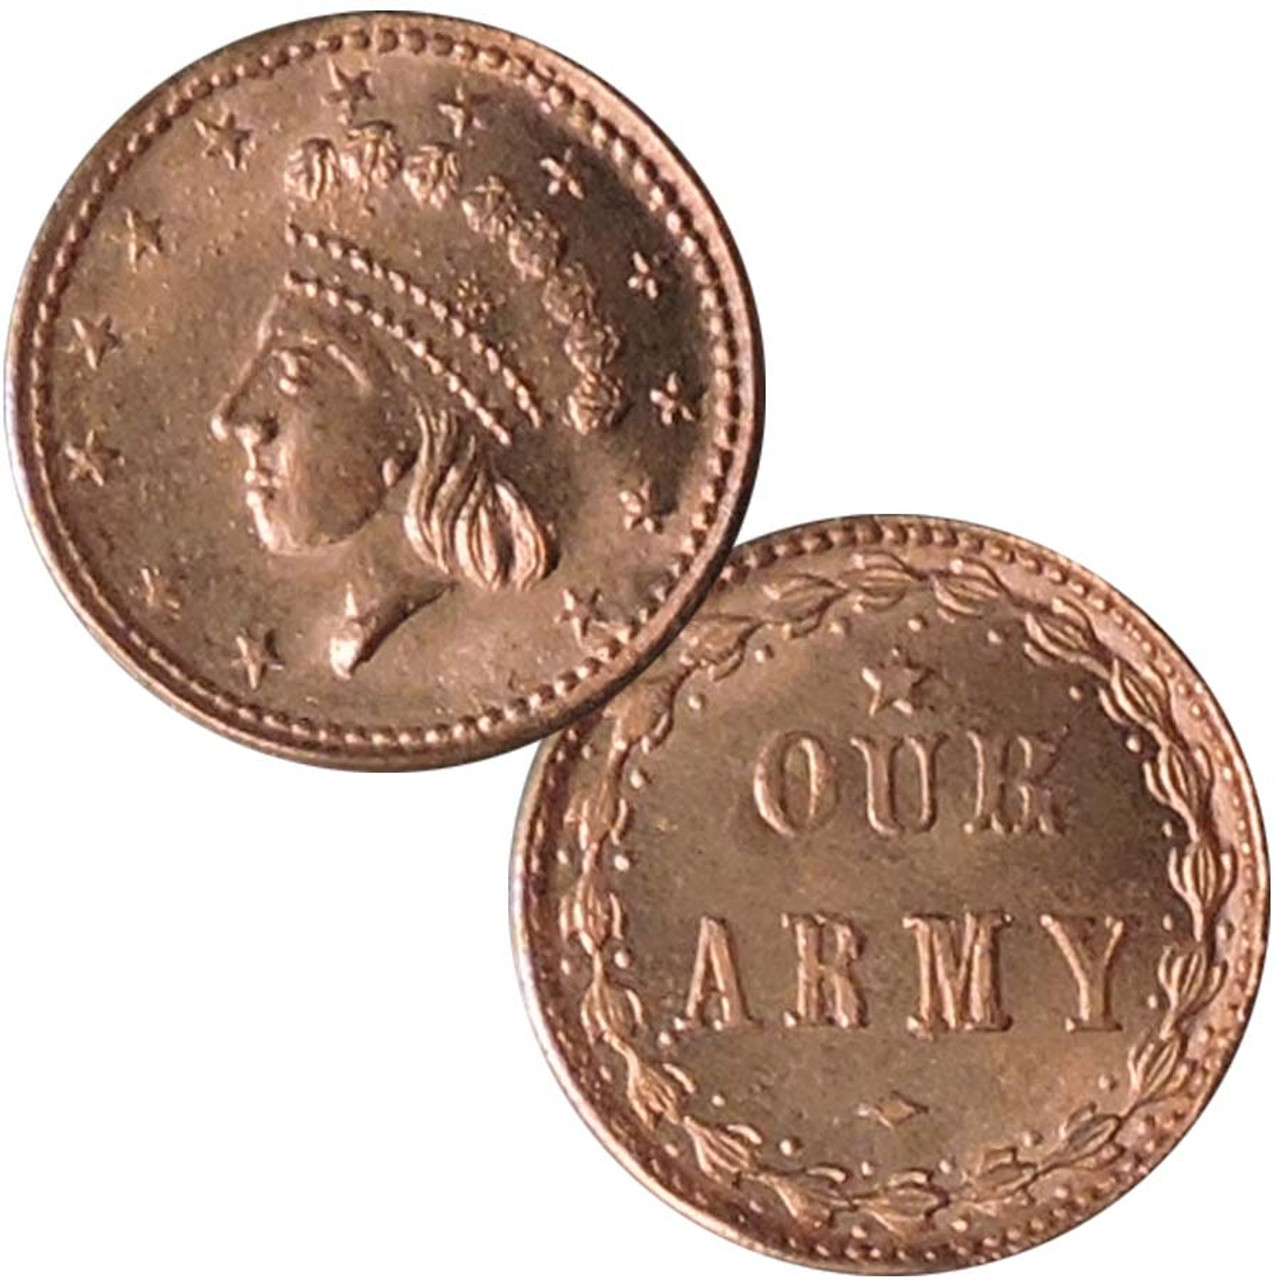 Bronze Civil War 'Our Army' Token Image 1